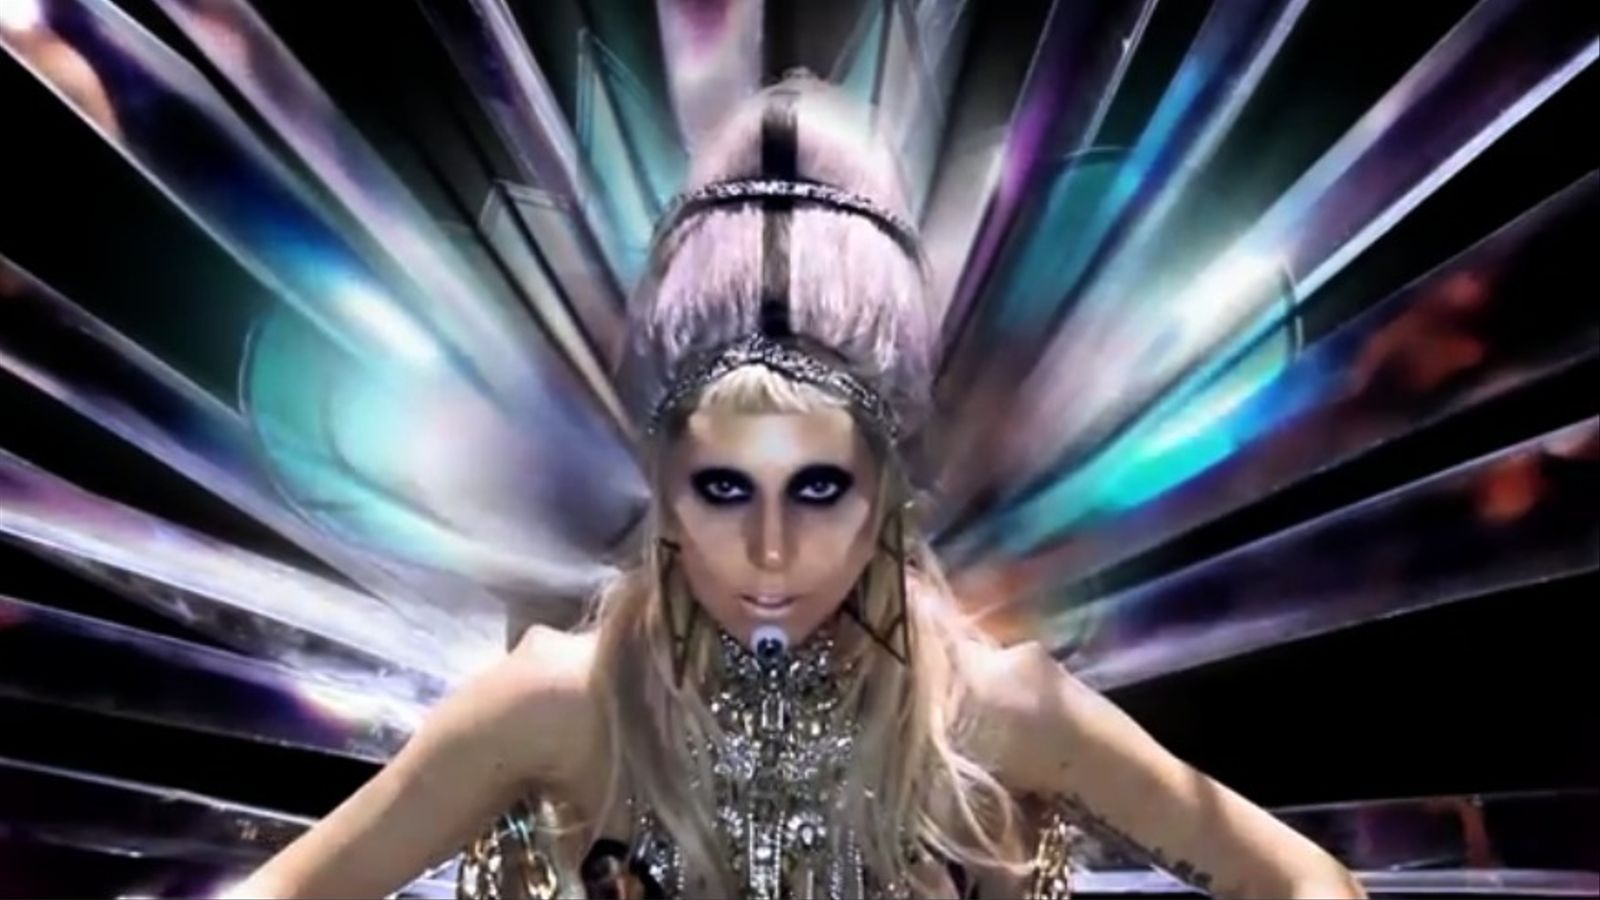 'Born this way', el nou vídeo de Lady Gaga